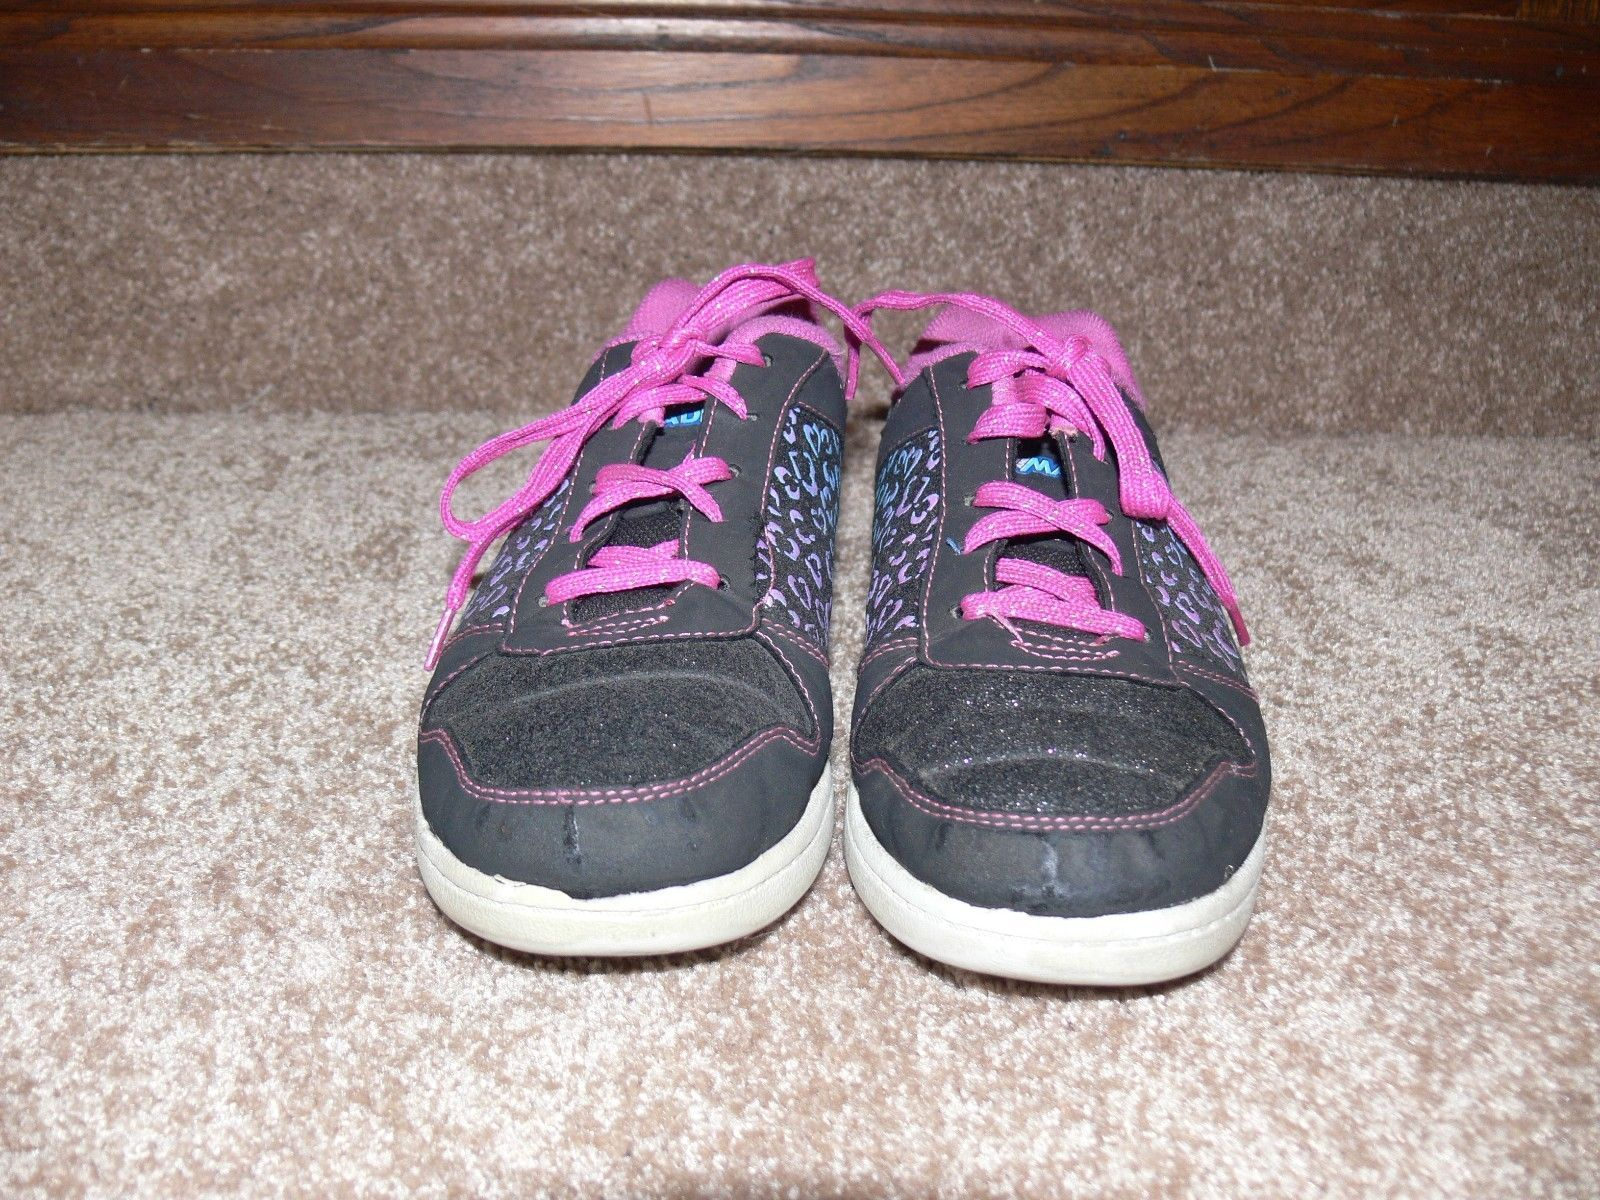 DISNEY LIV AND MADDIE Shoes Youth Sneakers Glitter Hearts Girls Size 5 cz image 3